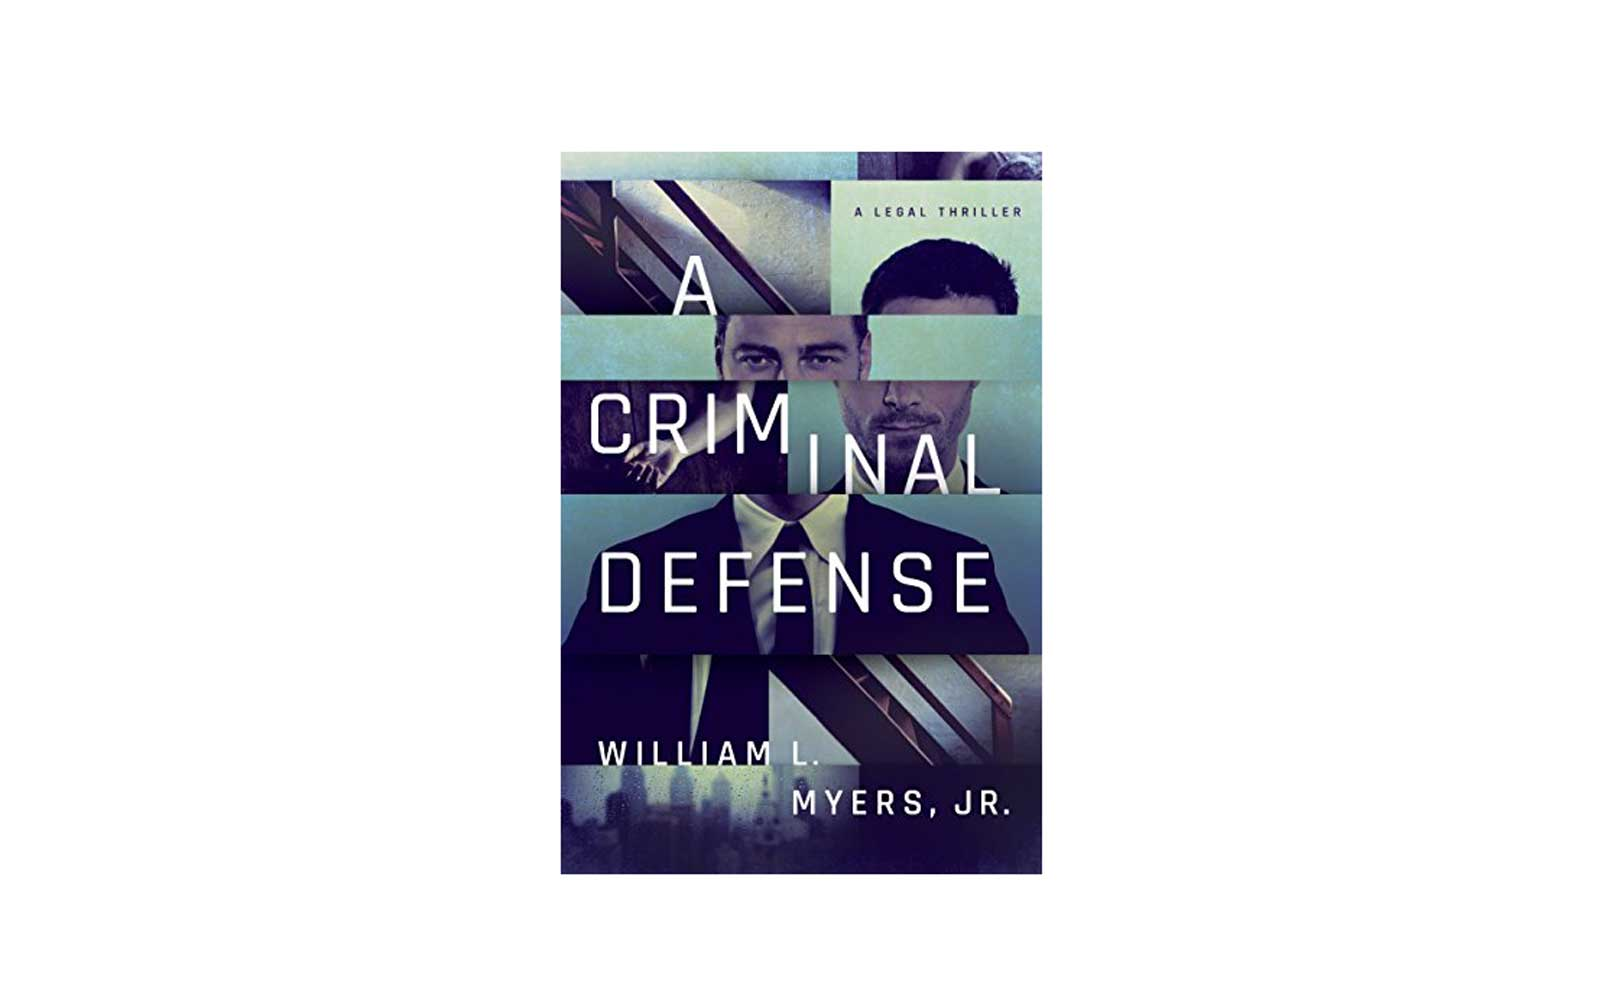 'A Criminal Defense' by William L. Myers Jr. (Thomas & Mercer)